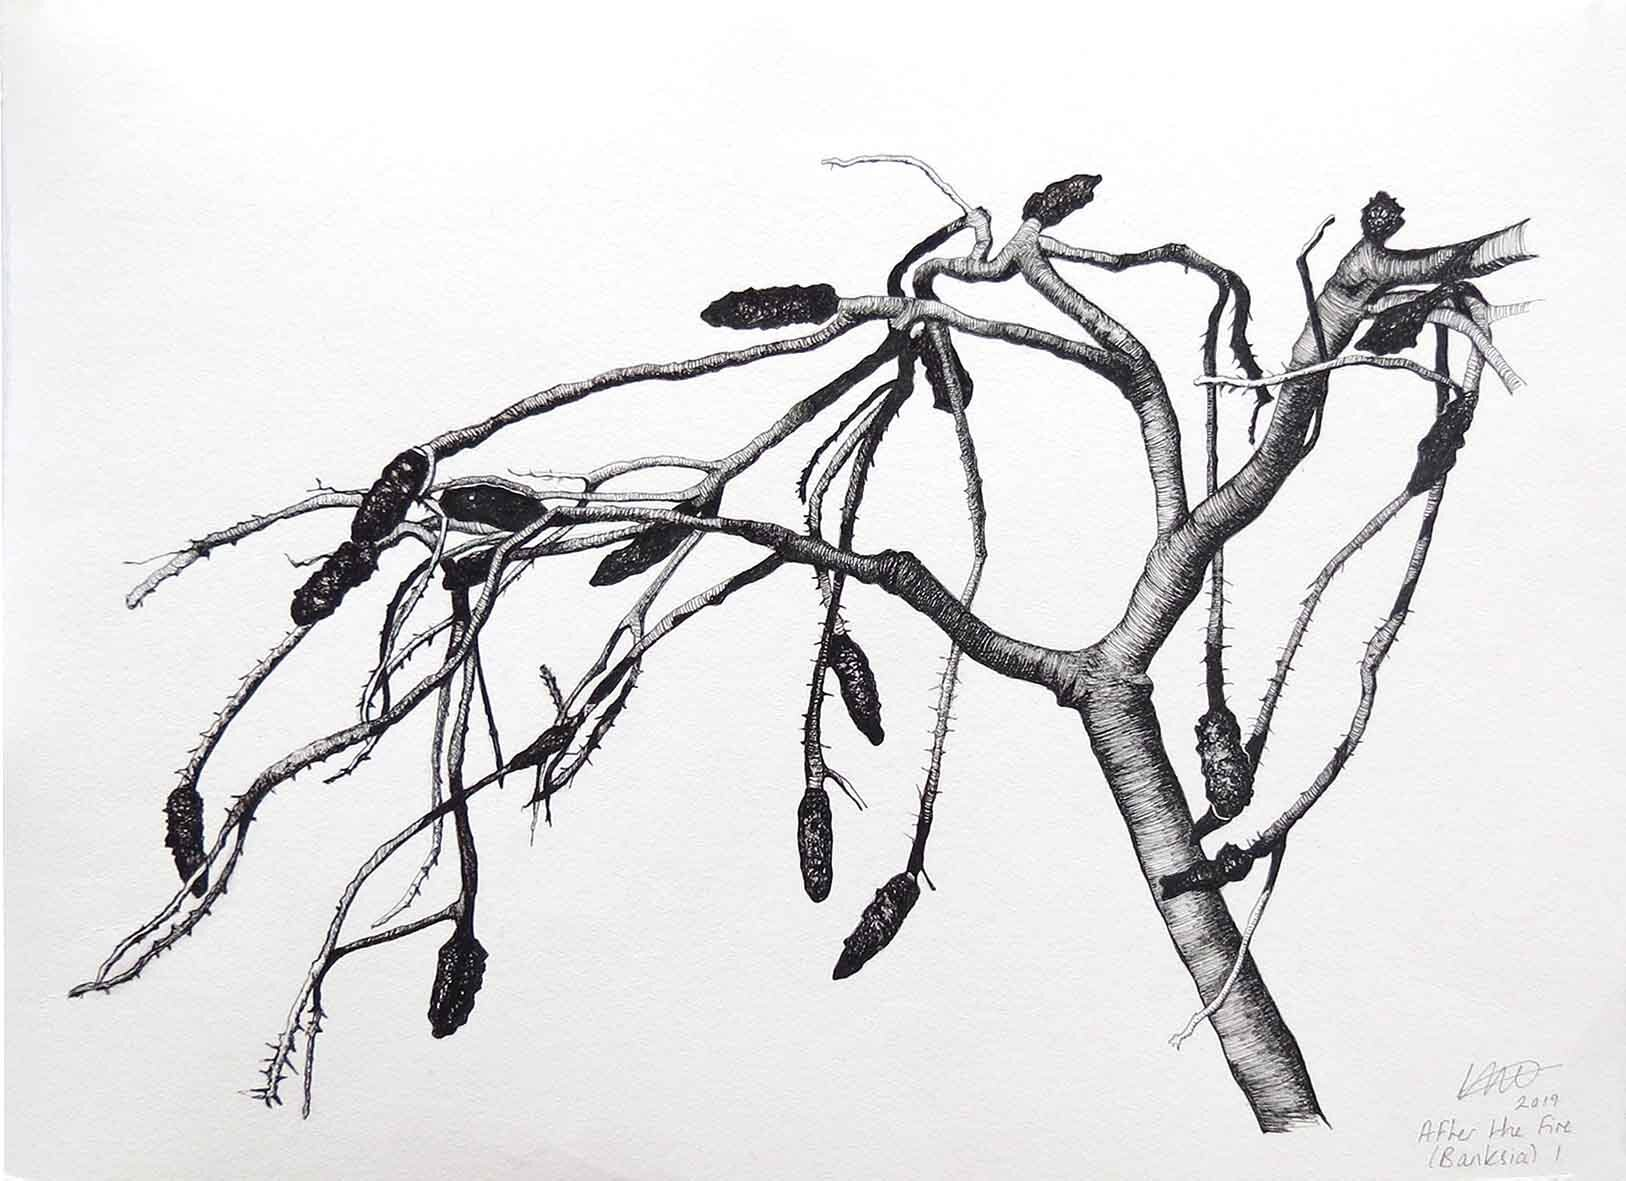 28. Angela McHarrie, After the Fire (Banksia) I, 2019, ink on Hahnemuhle paper, 30 x 42 cm $330